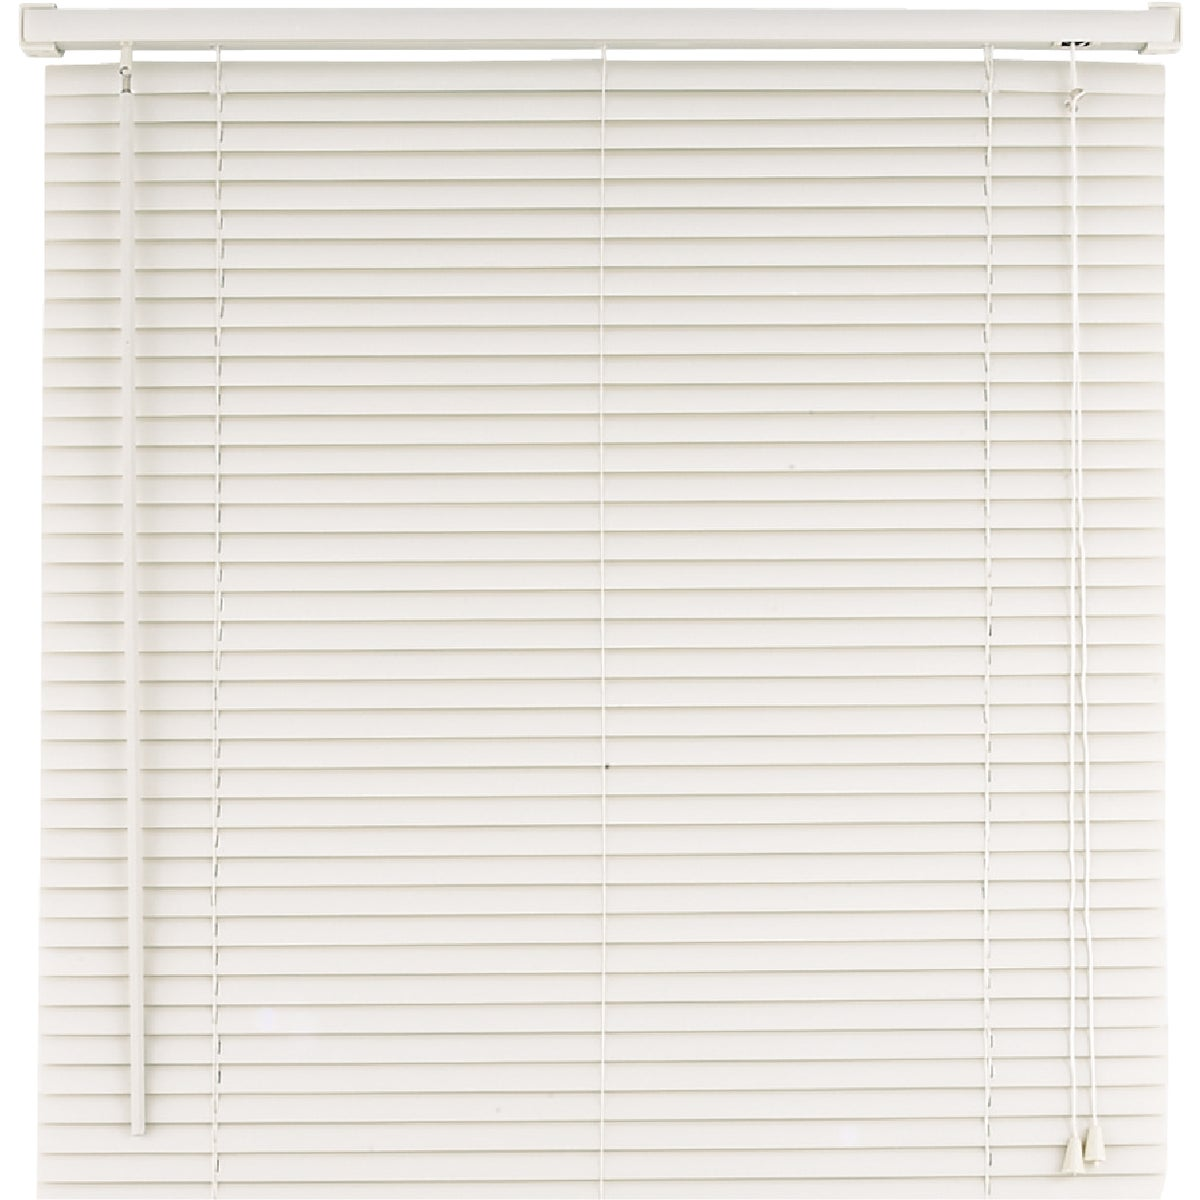 72X64 WHITE BLIND - 15231 by Lotus Wind Incom